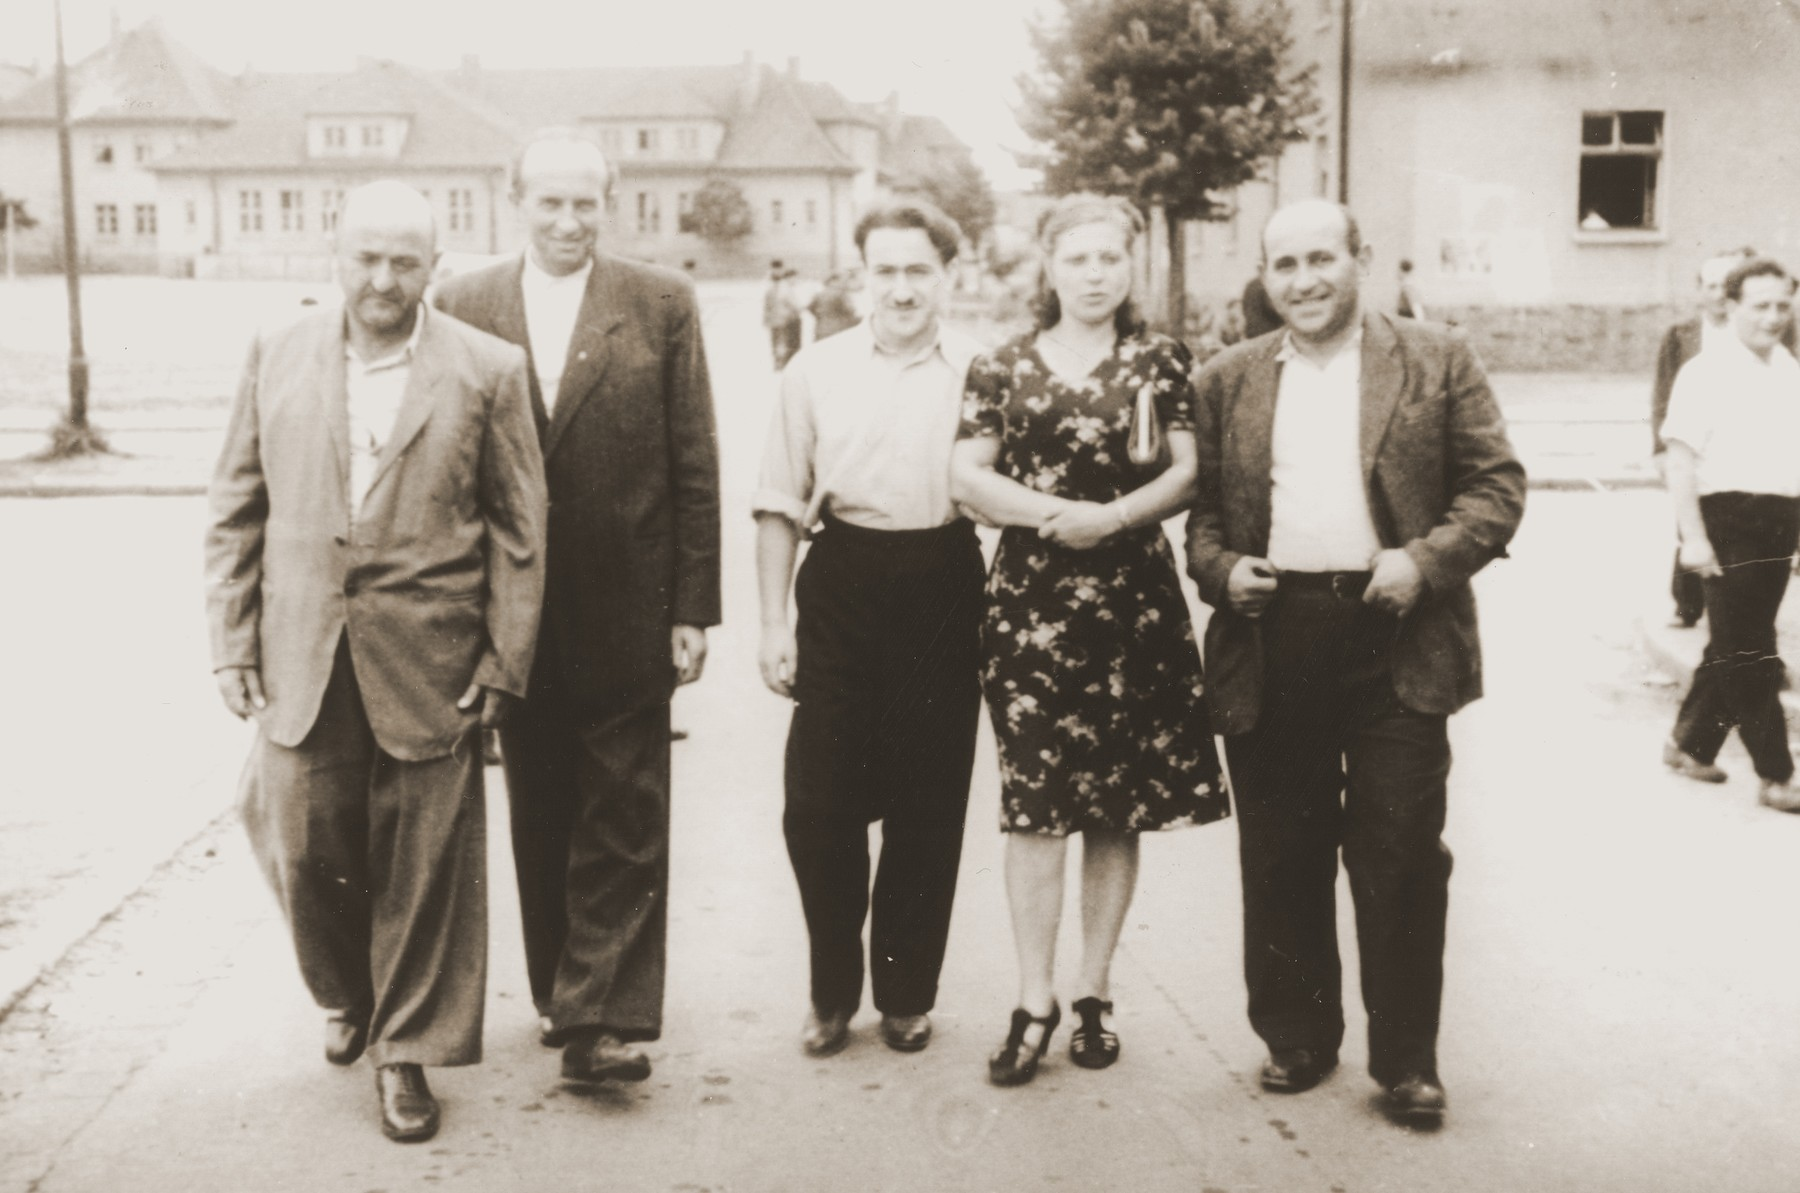 Moishe Broda walks along a street with a group of friends in the Bergen-Belsen displaced persons camp.